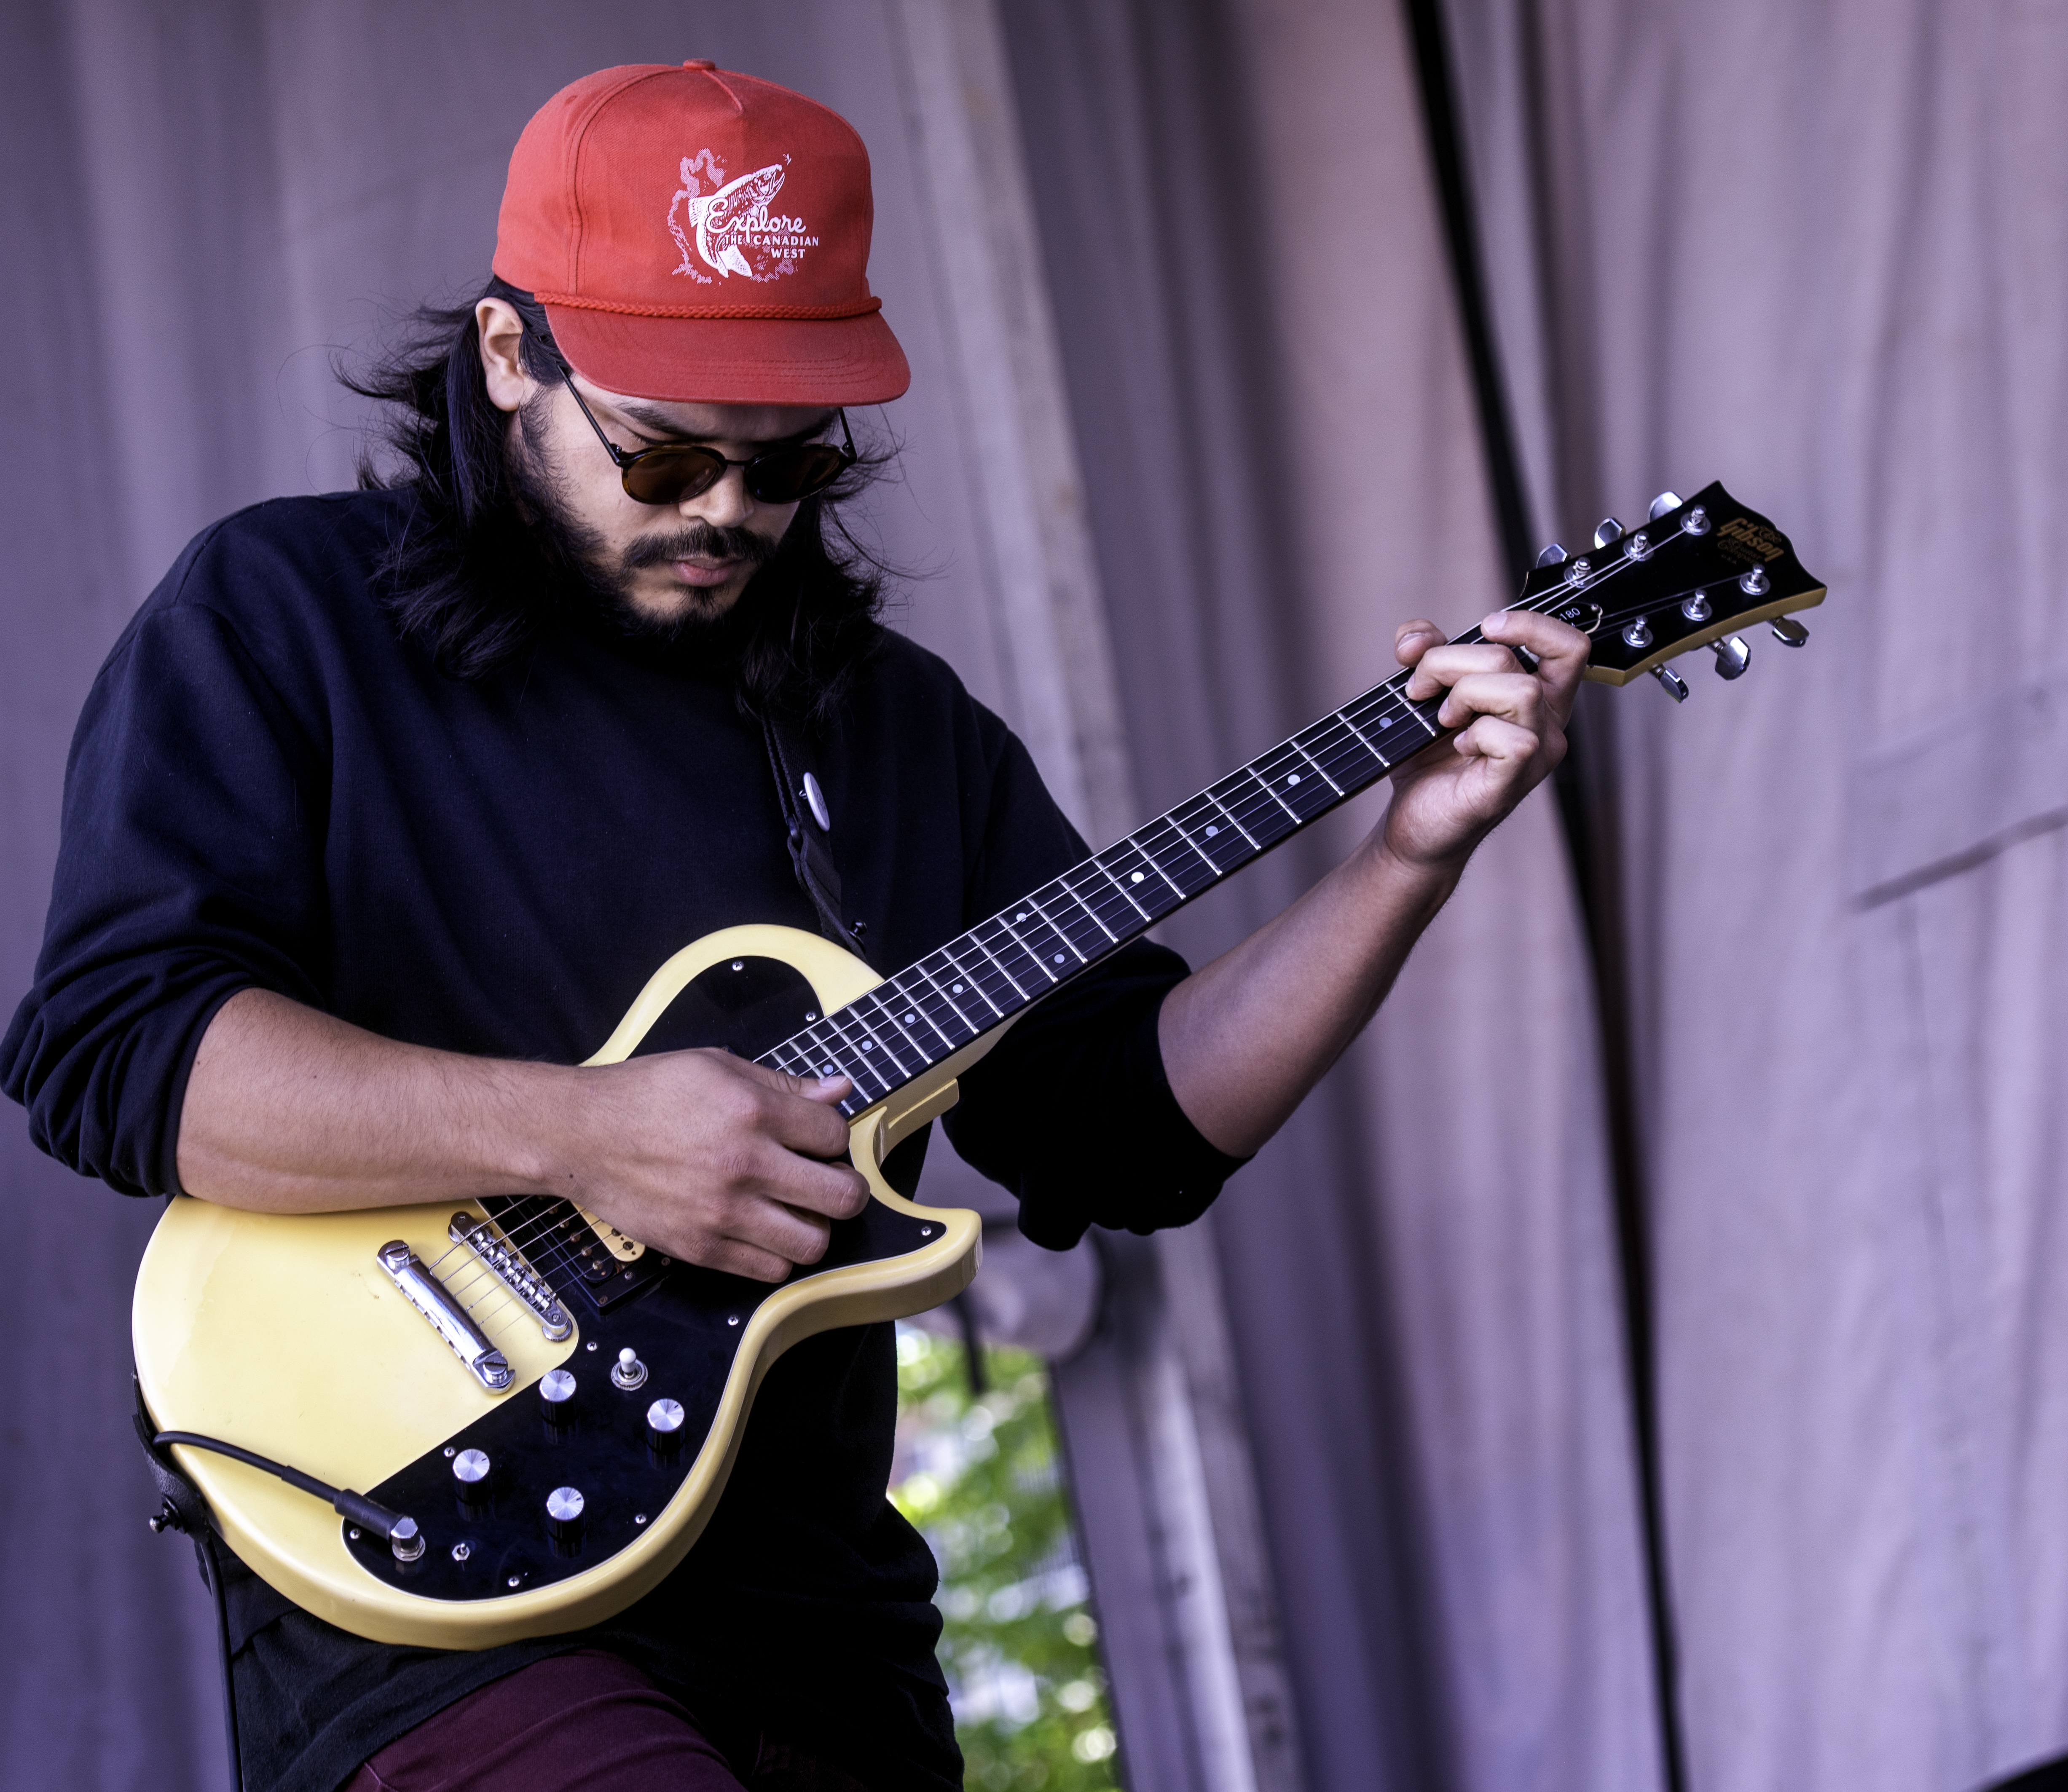 Matthew Fong with Future Machines at the Guelph Jazz Festival (2019)